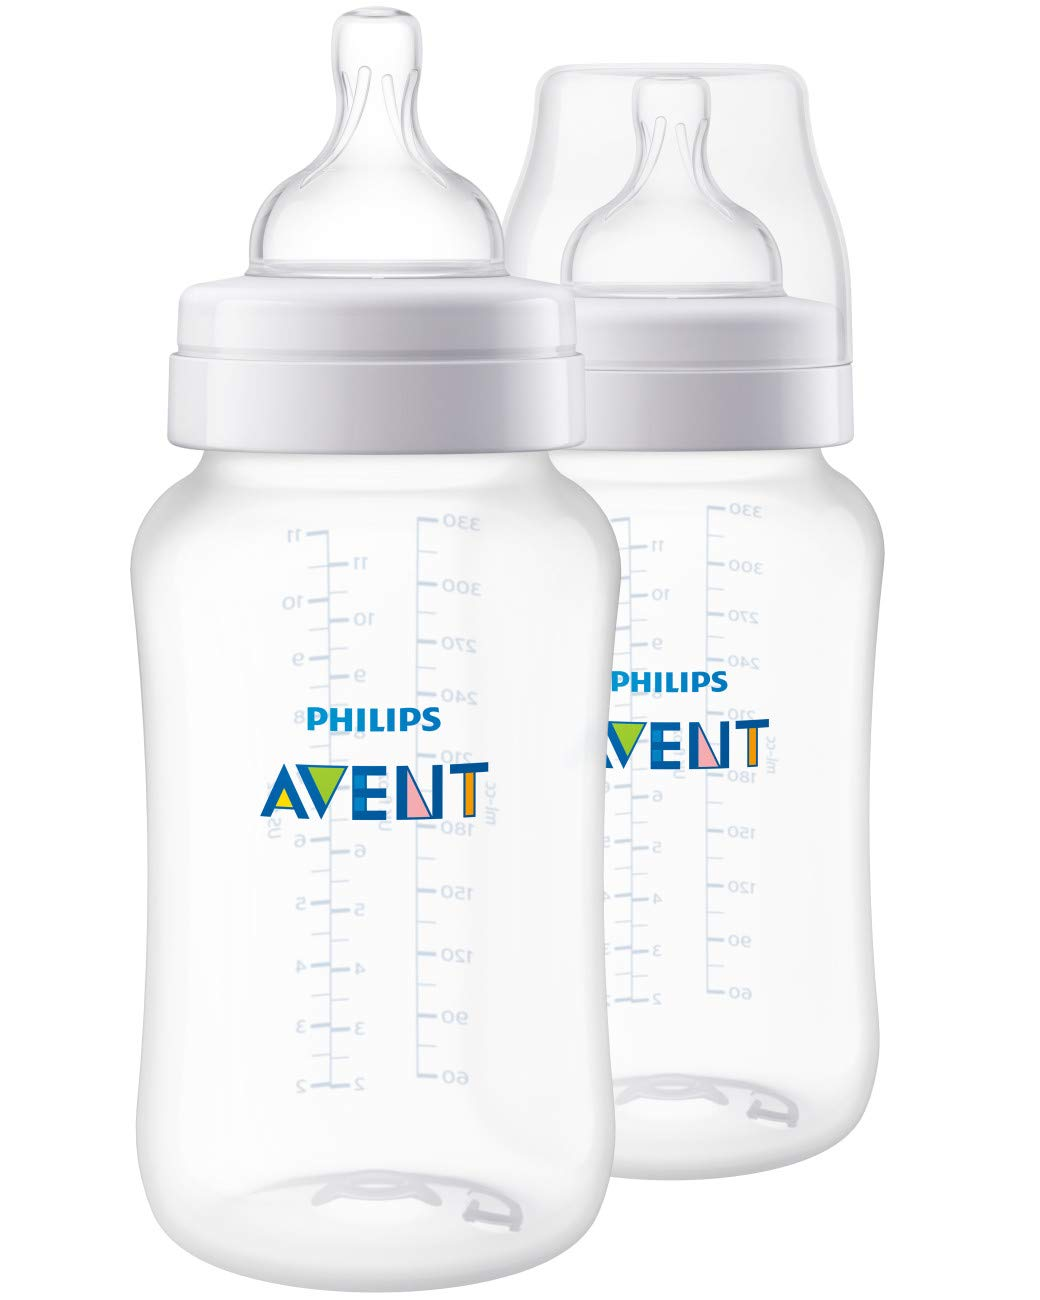 Philips Avent Anti-Colic Baby Bottle 11oz, 2pk, SCF406/24 by Philips AVENT